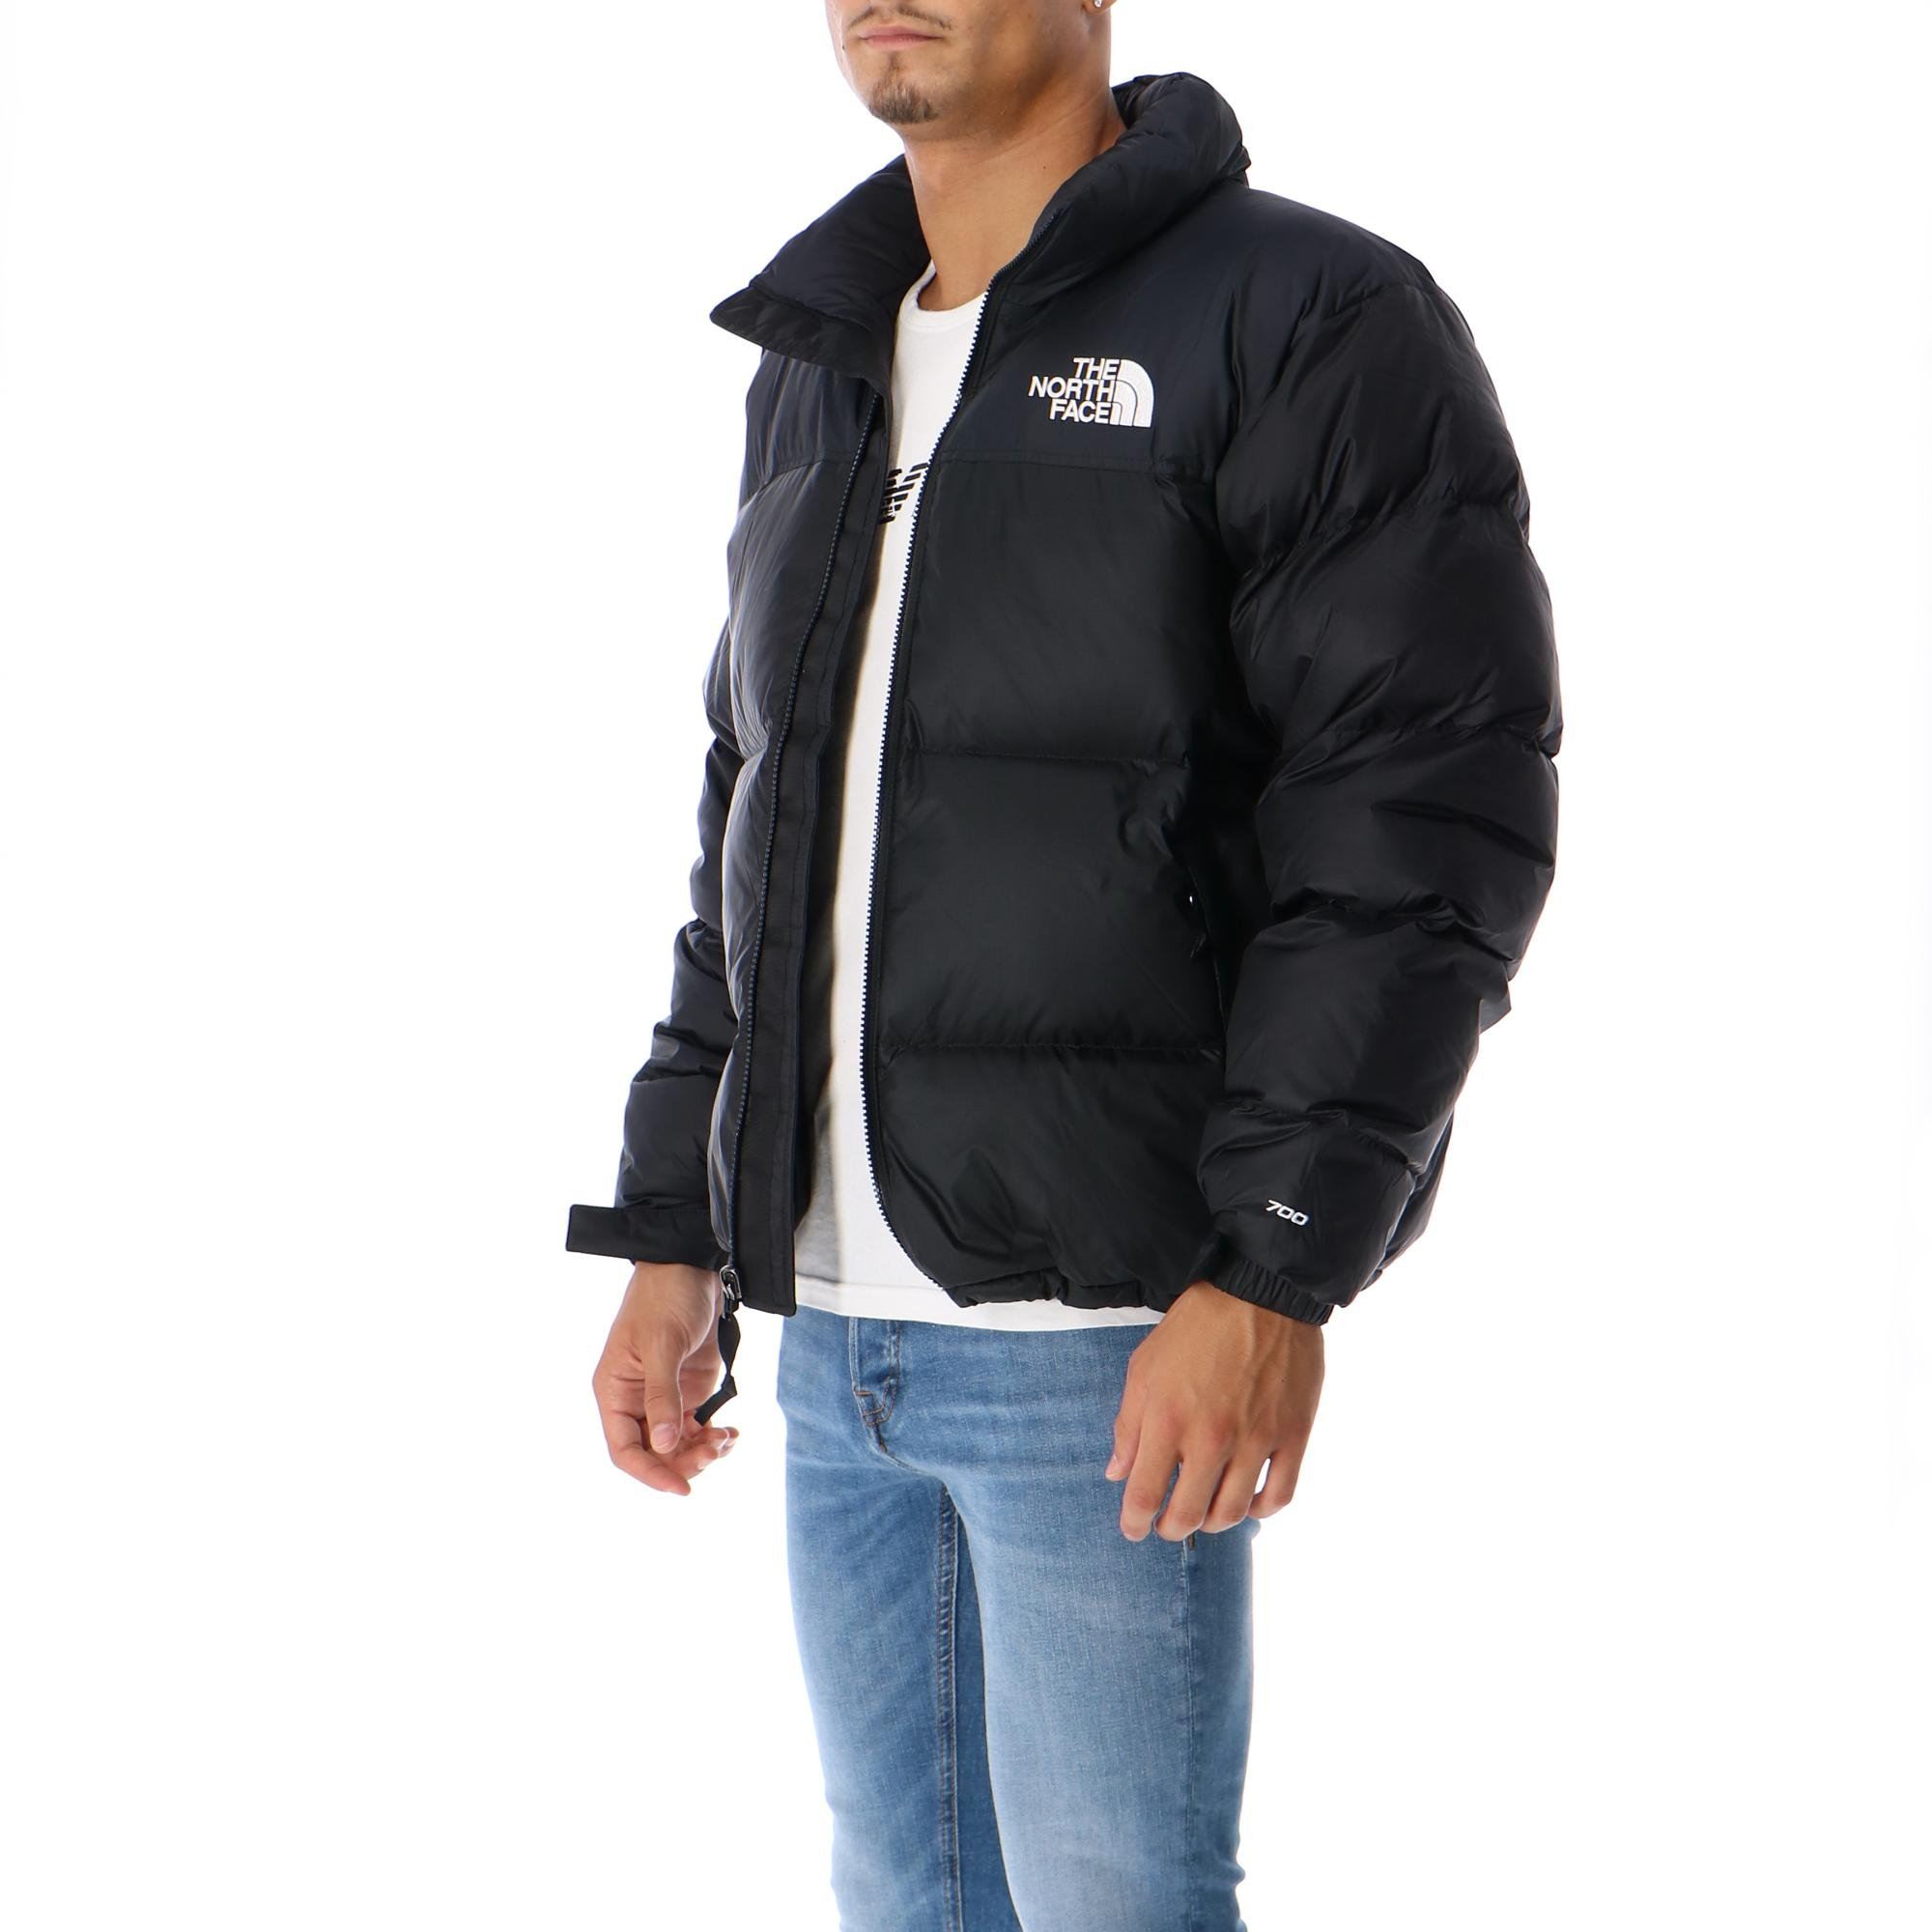 Kendte The North Face 1996 Retro Nuptse Jacket Black | Treesse FV-58